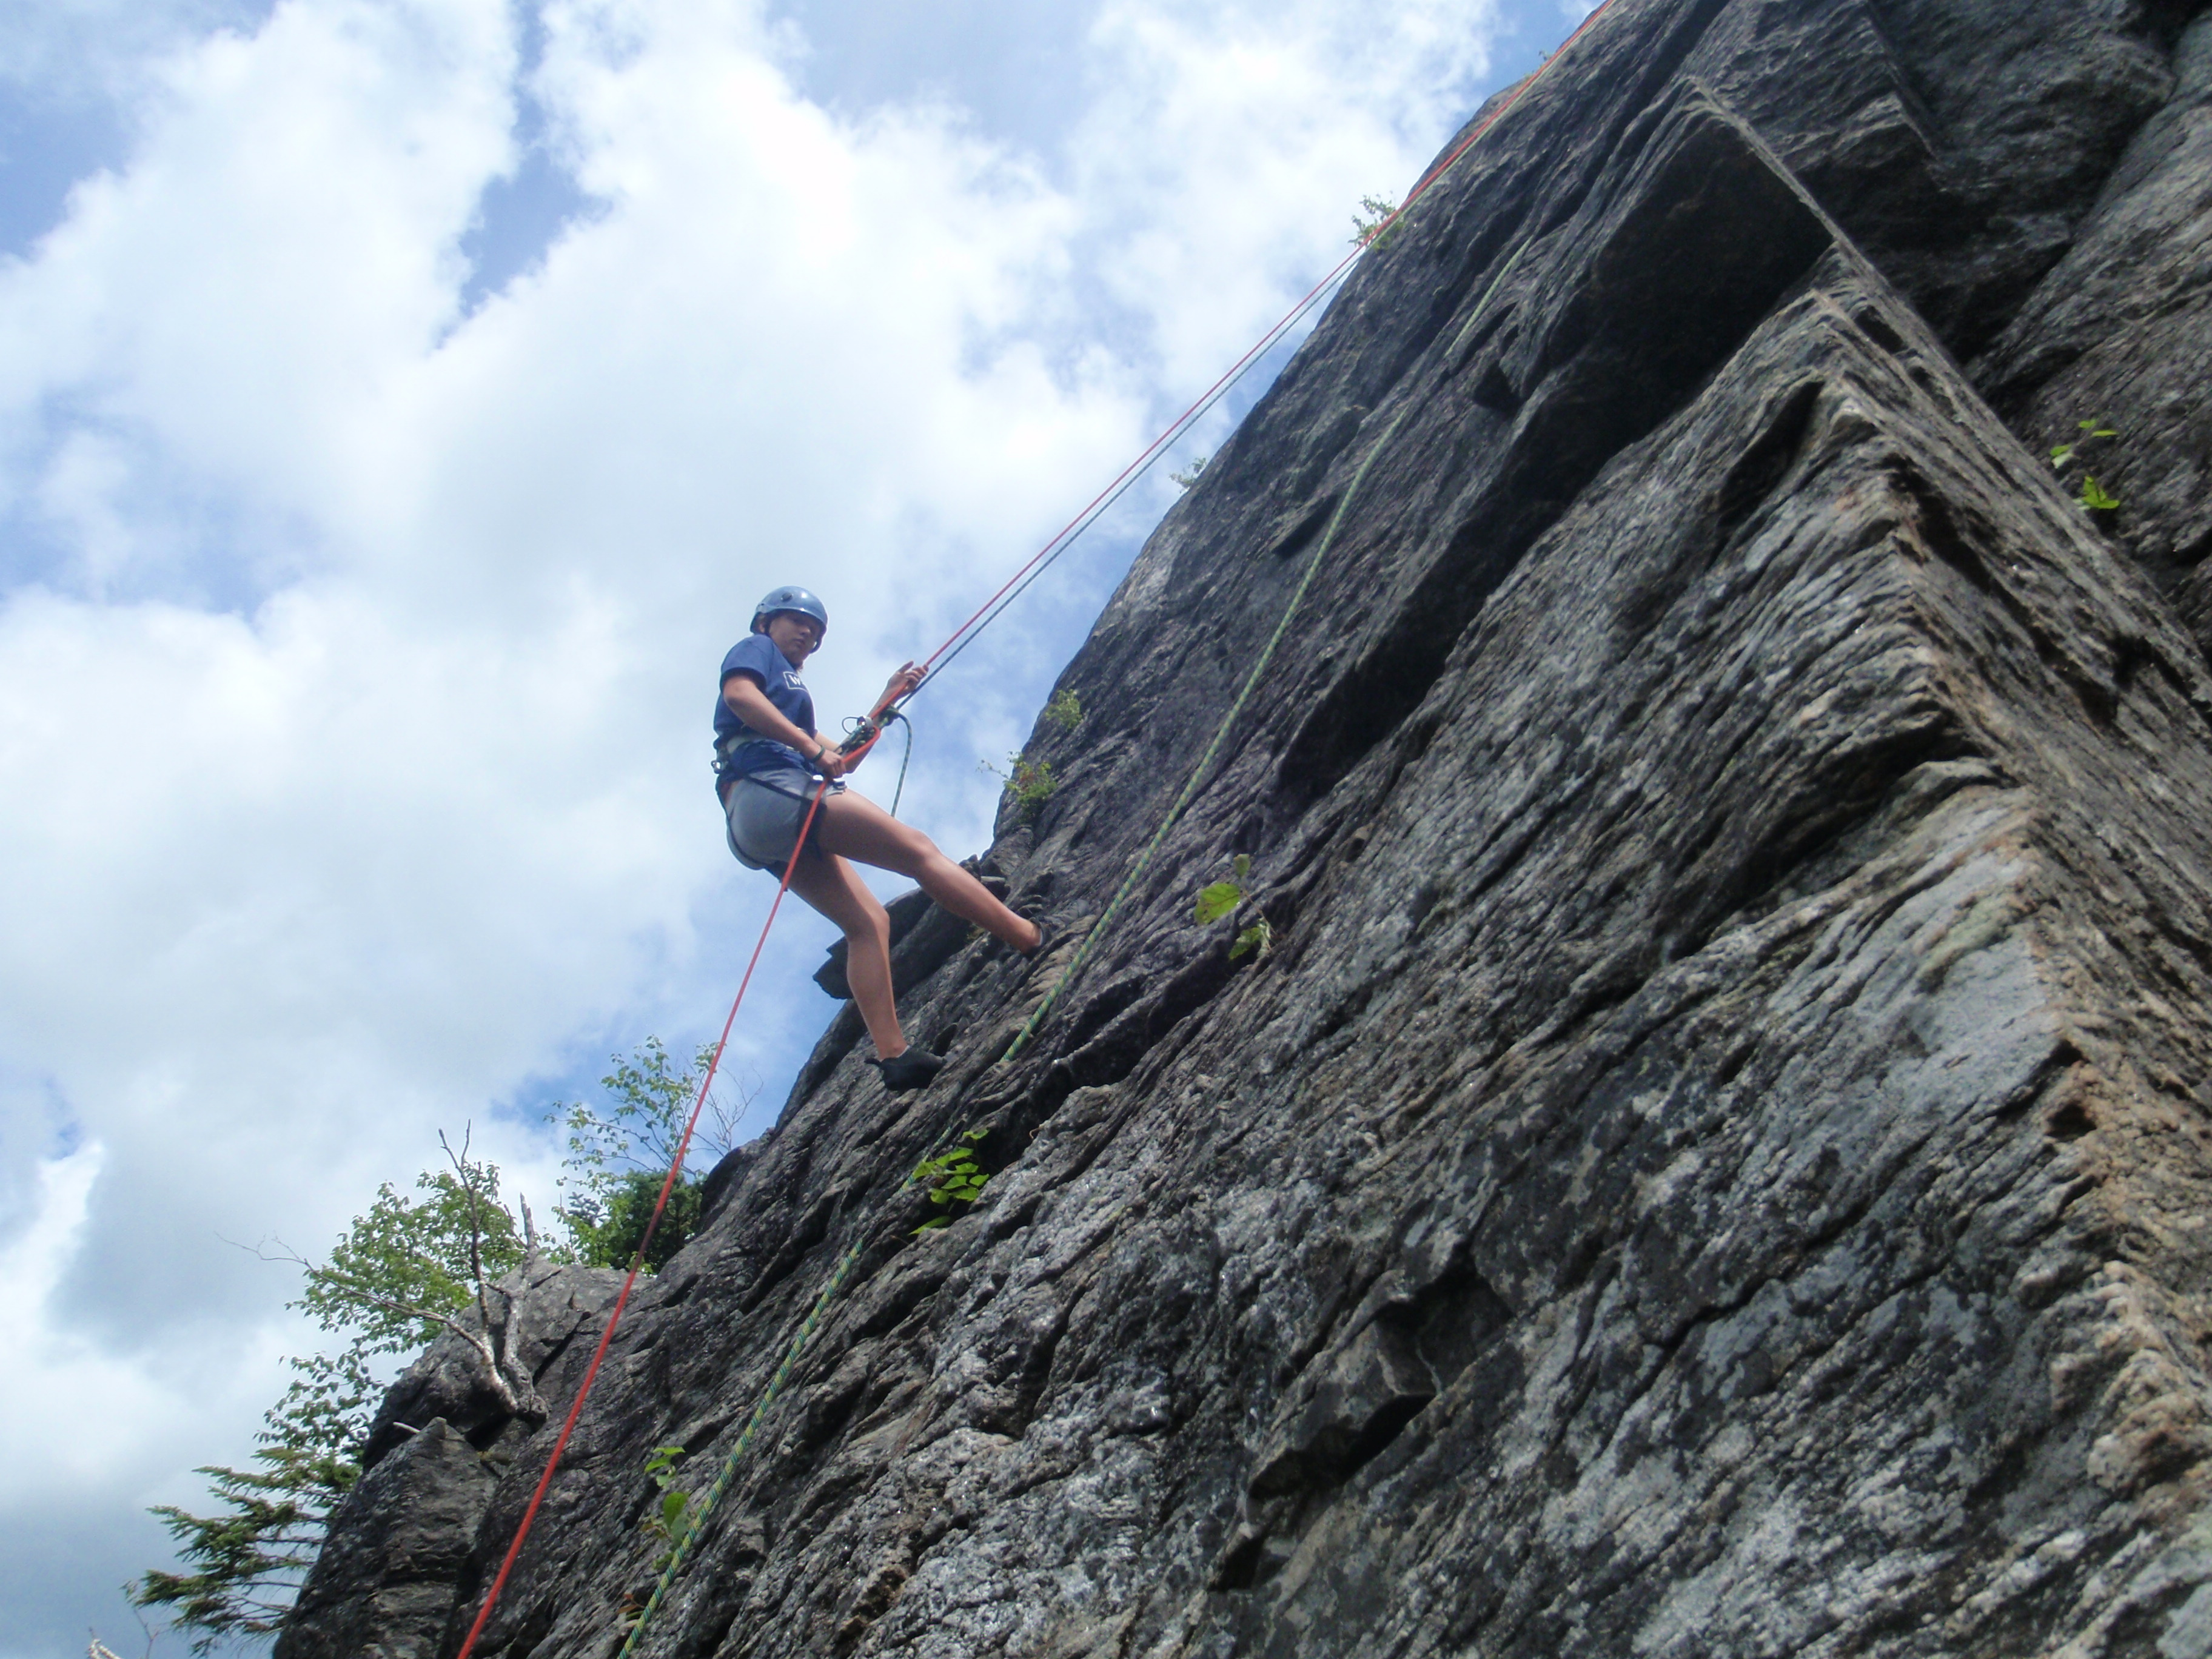 Once at the top each climber was rigged to rappel back down...